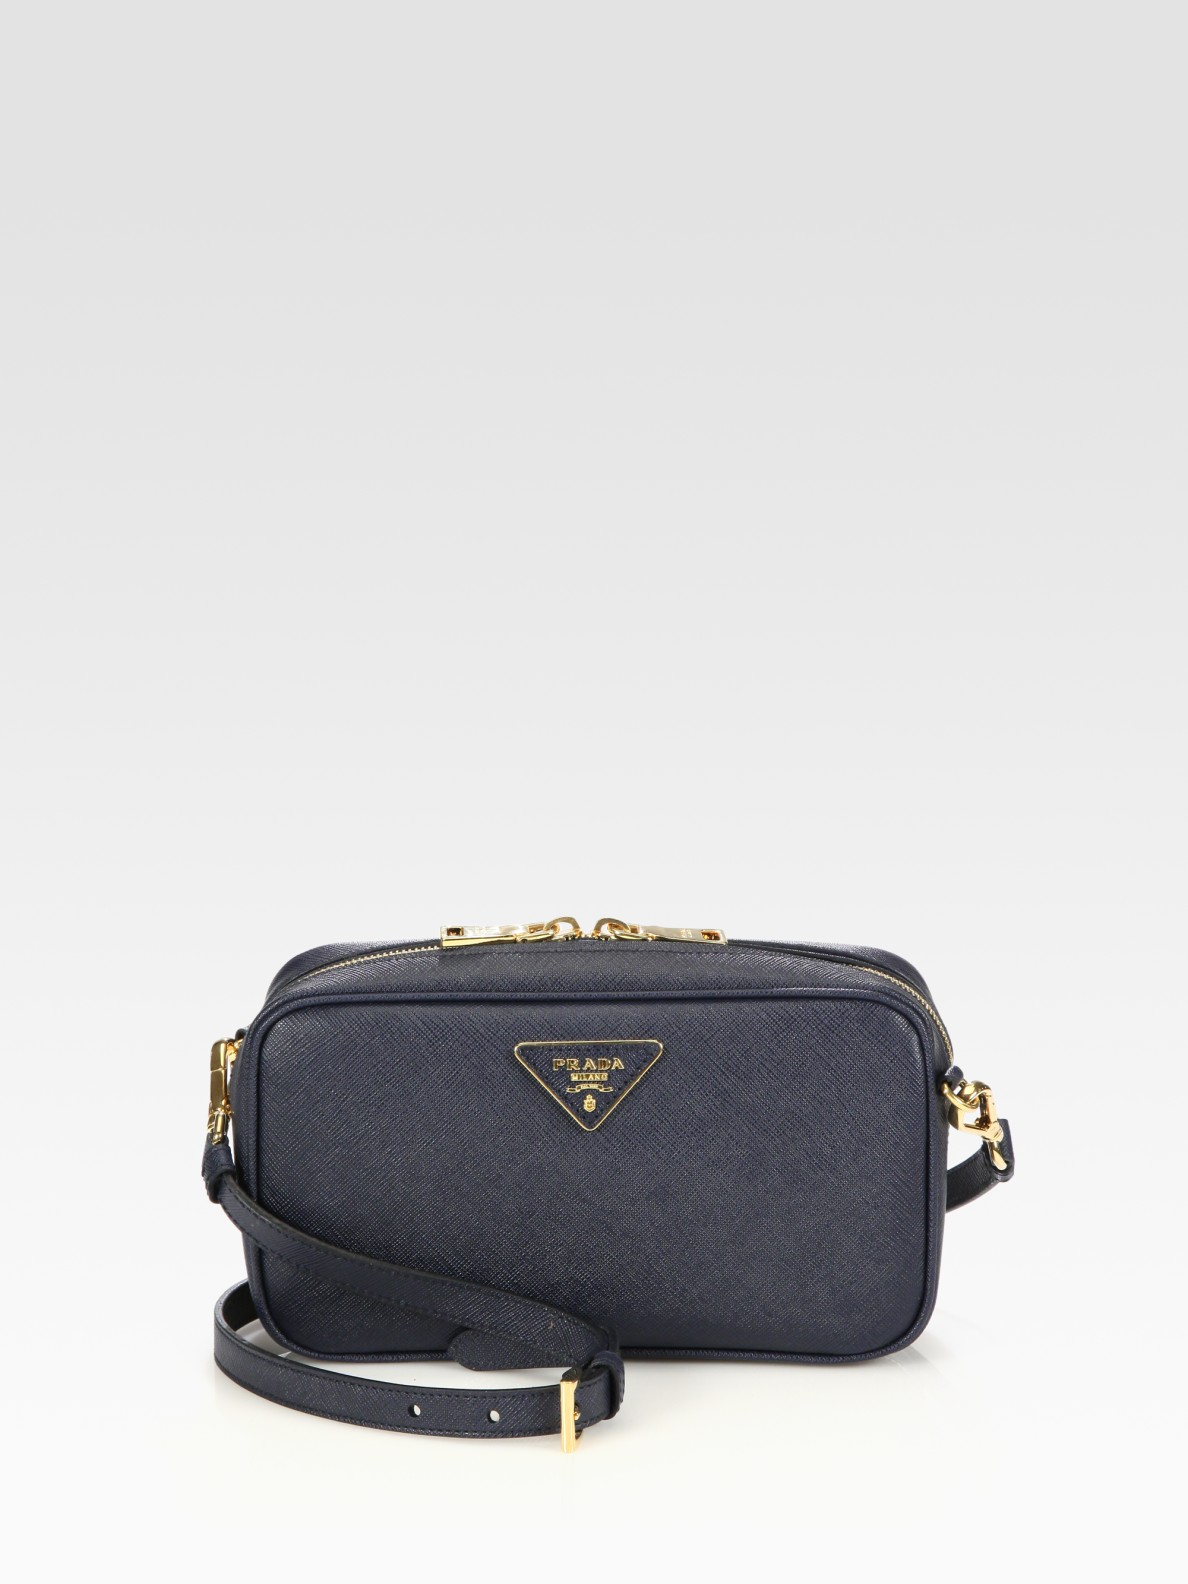 6978f7e7c33 Prada Saffiano Purse Bow | City of Kenmore, Washington